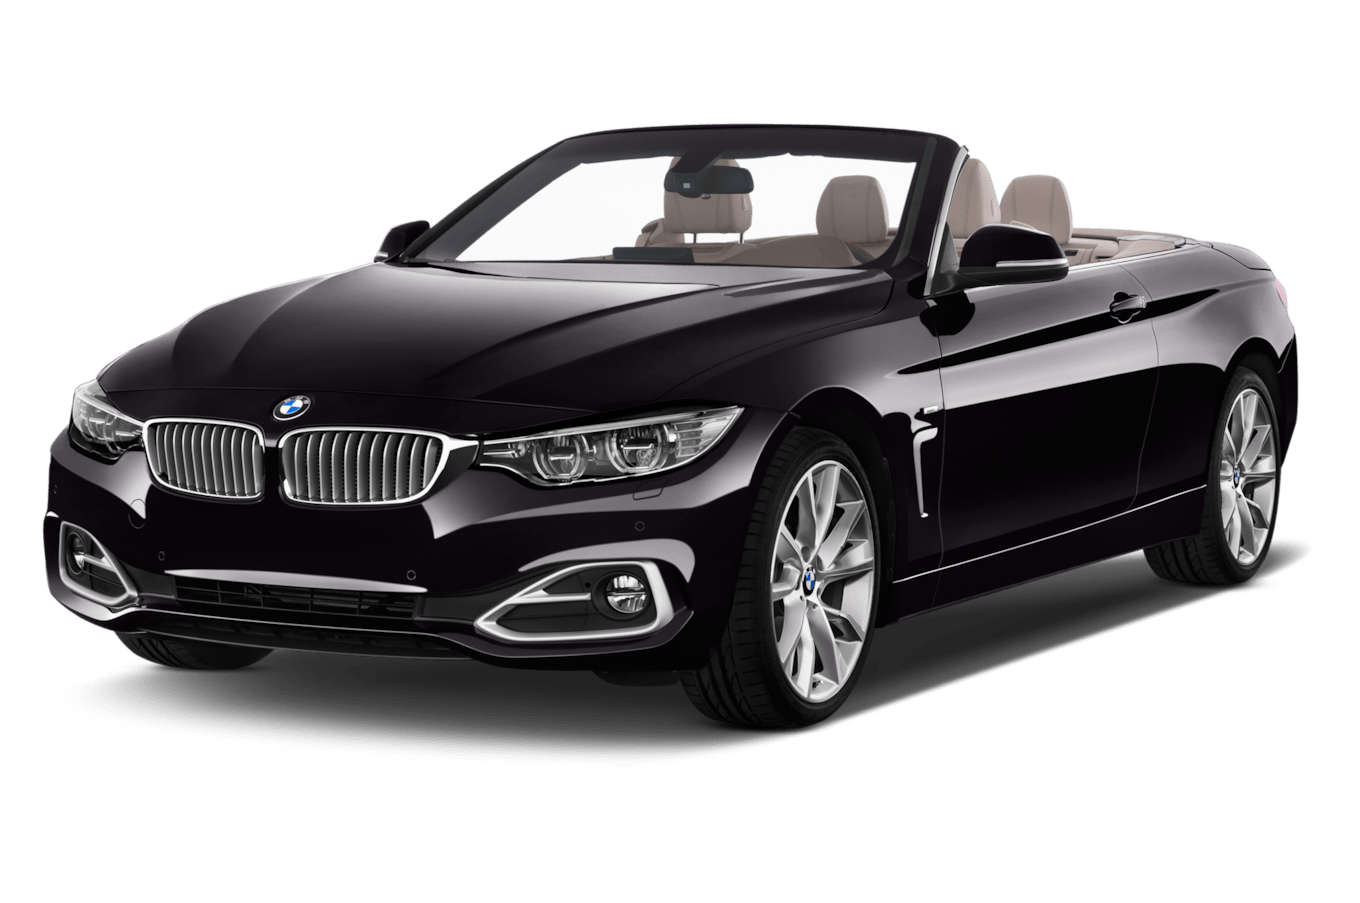 Le Meilleur 2014 Bmw 4 Series Reviews And Rating Motor Trend Ce Mois Ci